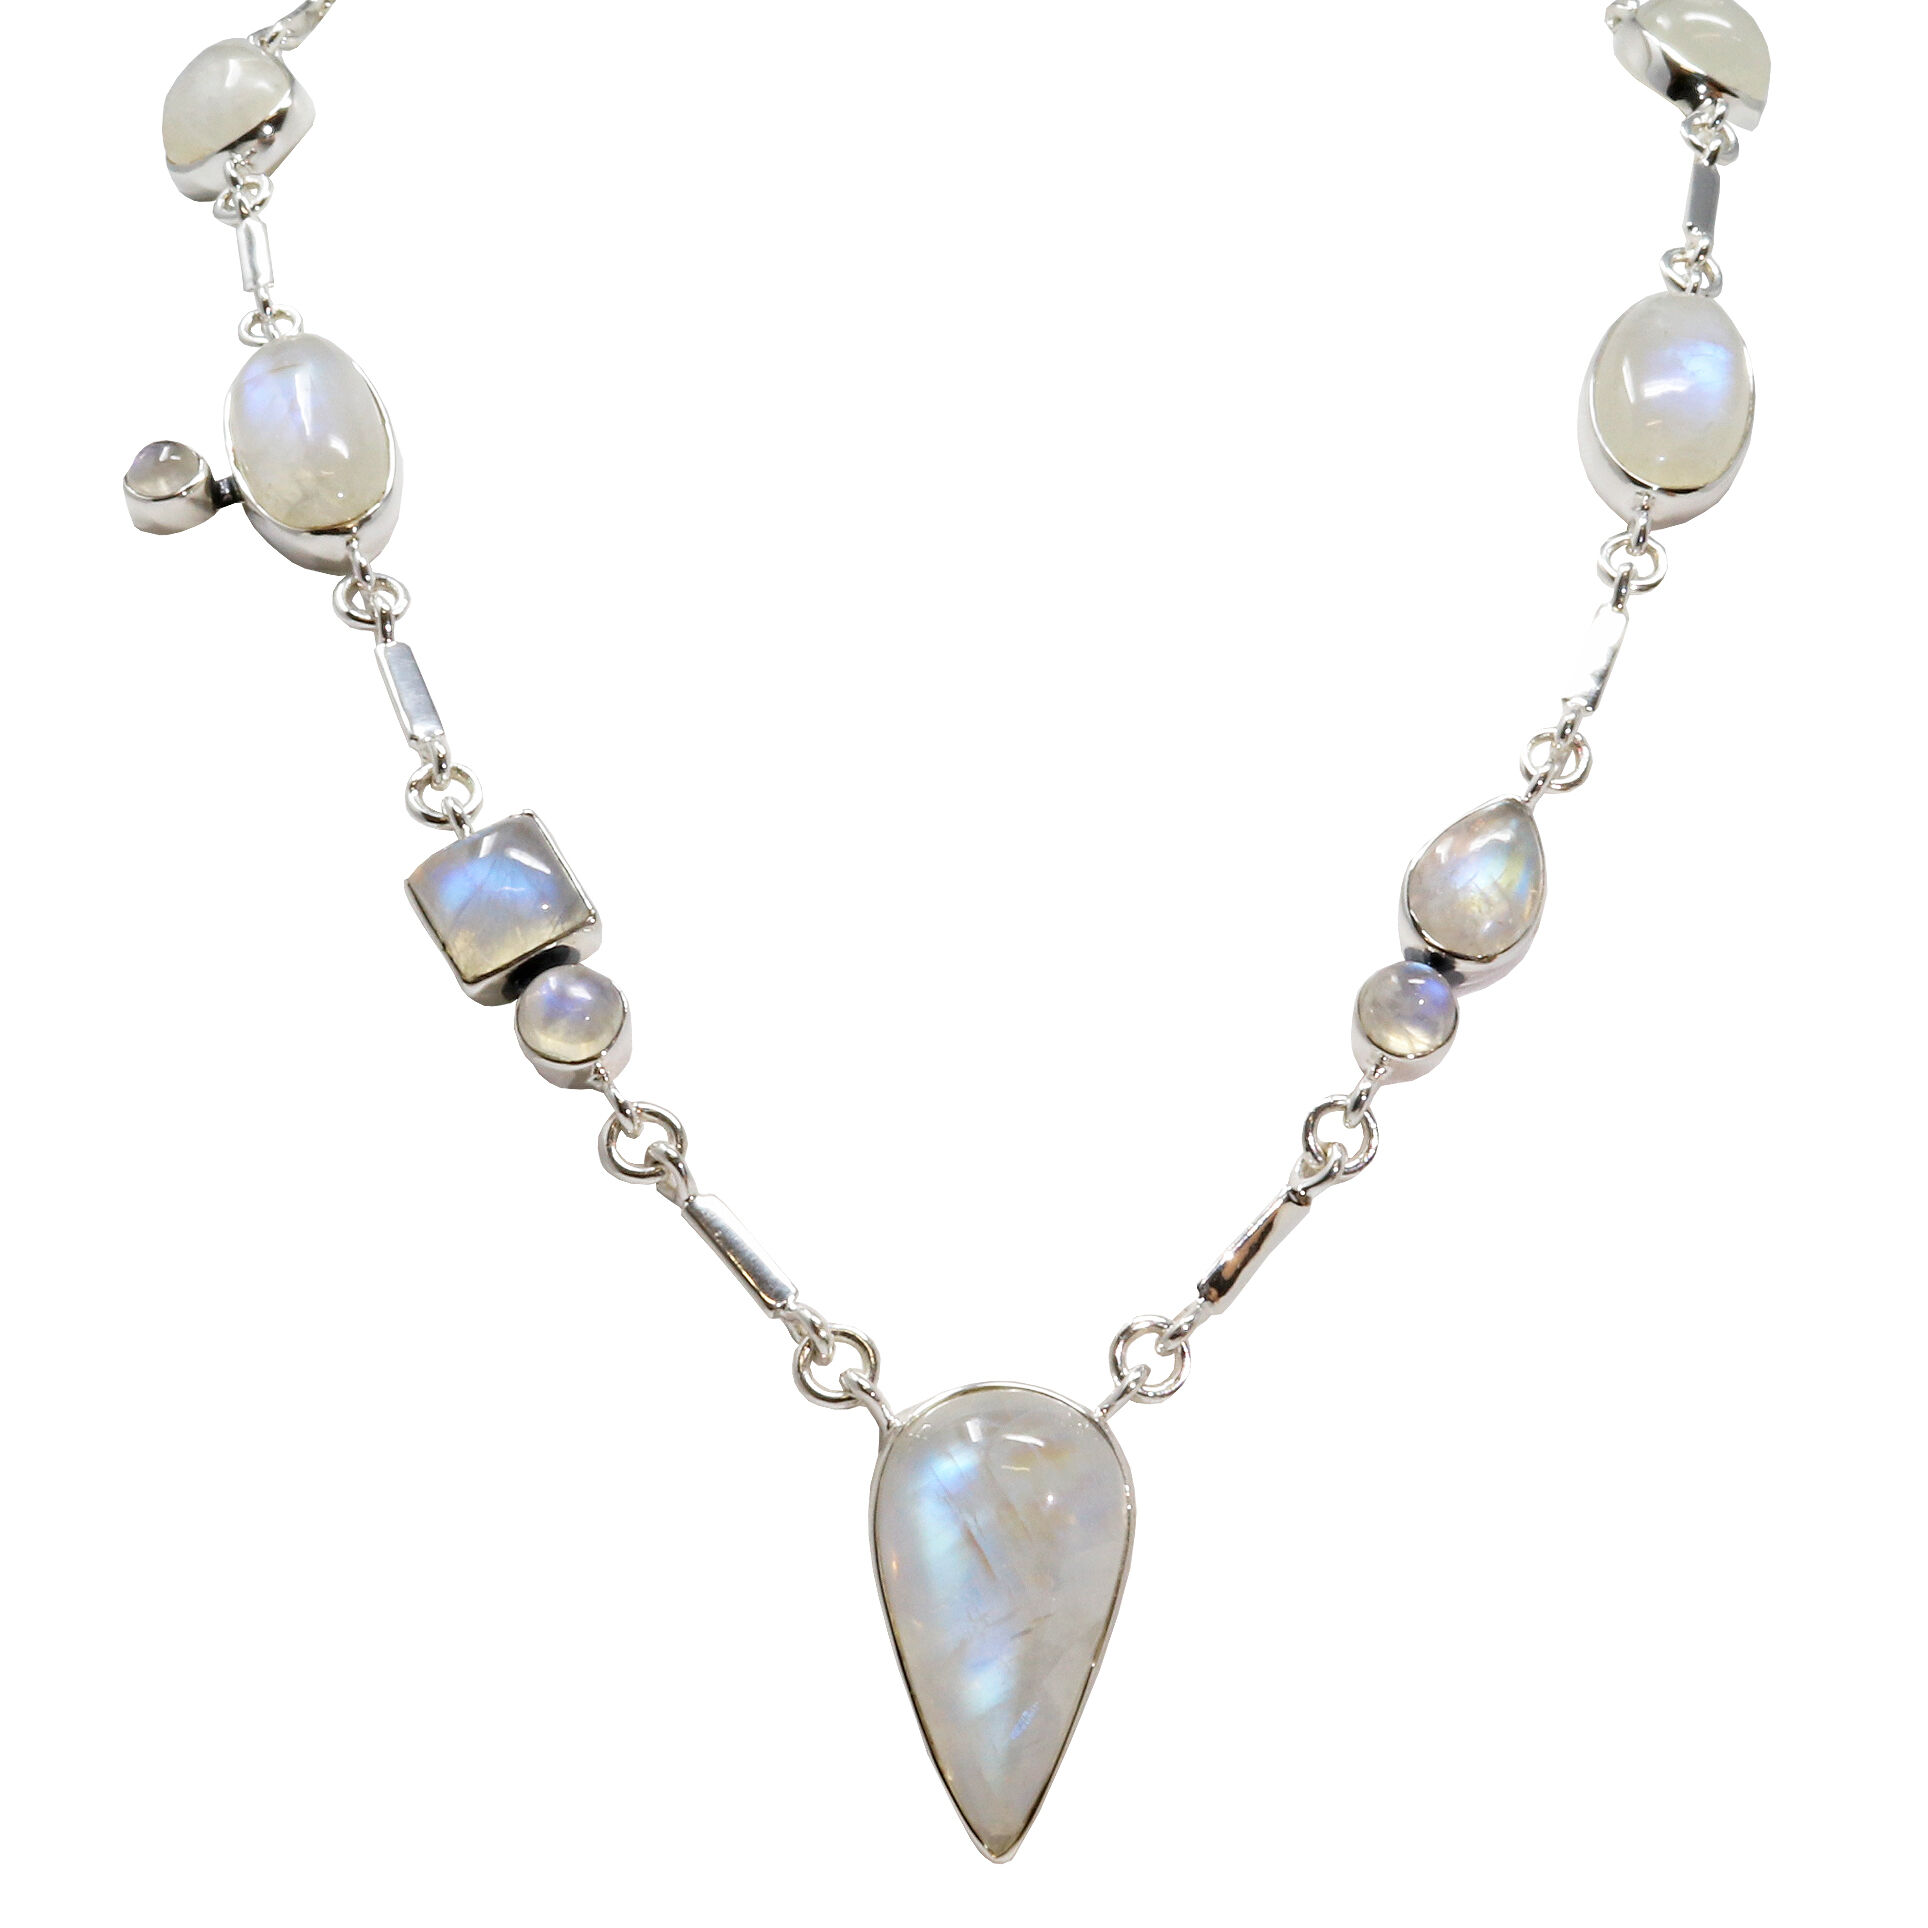 Rainbow Moonstone Necklace Geometric Cabochons With Silver Bar Links